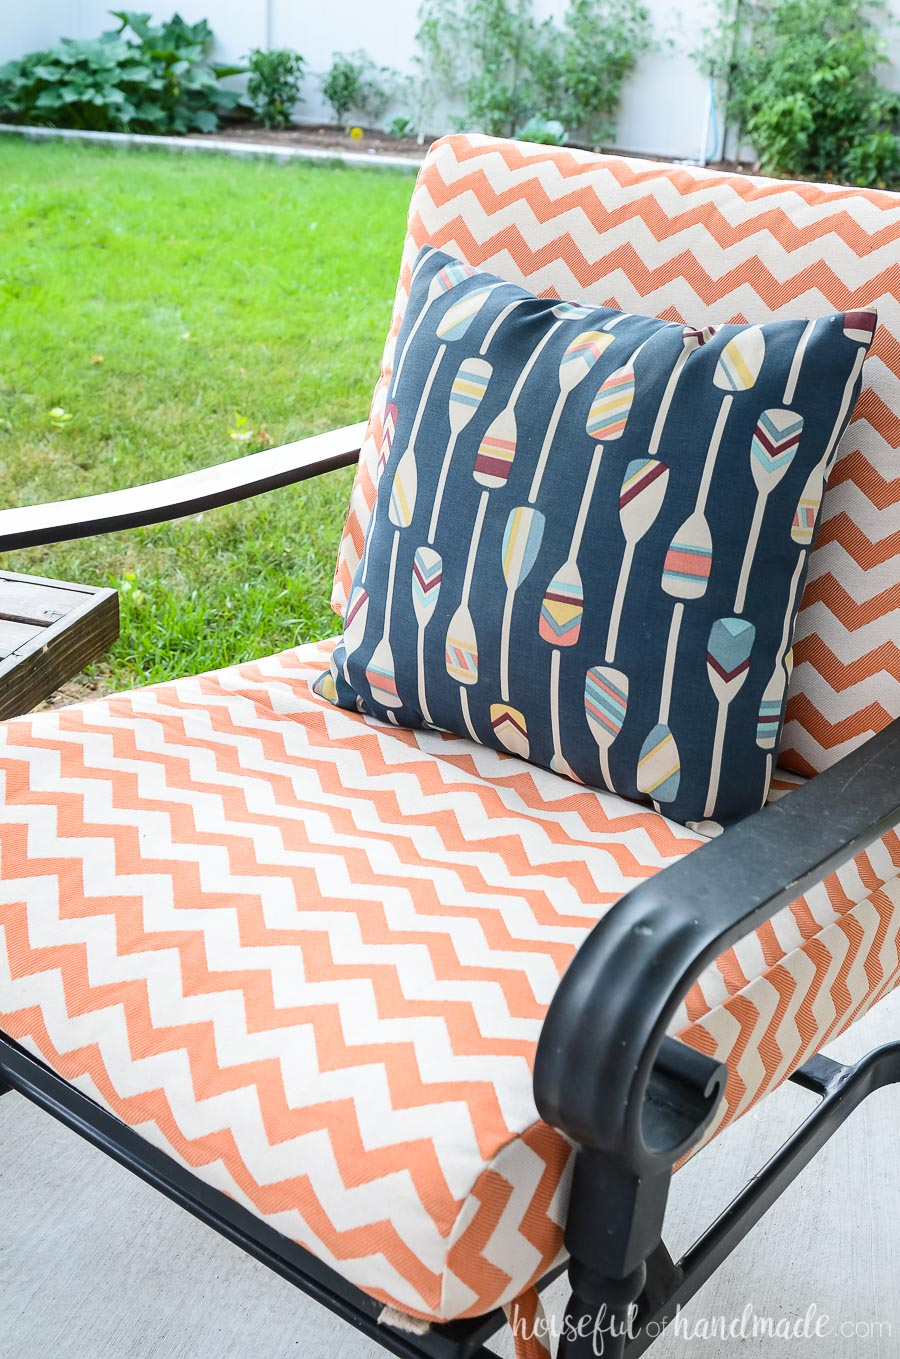 Bright colors give our outdoor living spaces an island vibe. These white and orange striped outdoor cushions are perfect with the colorful ores on a navy background pillow.